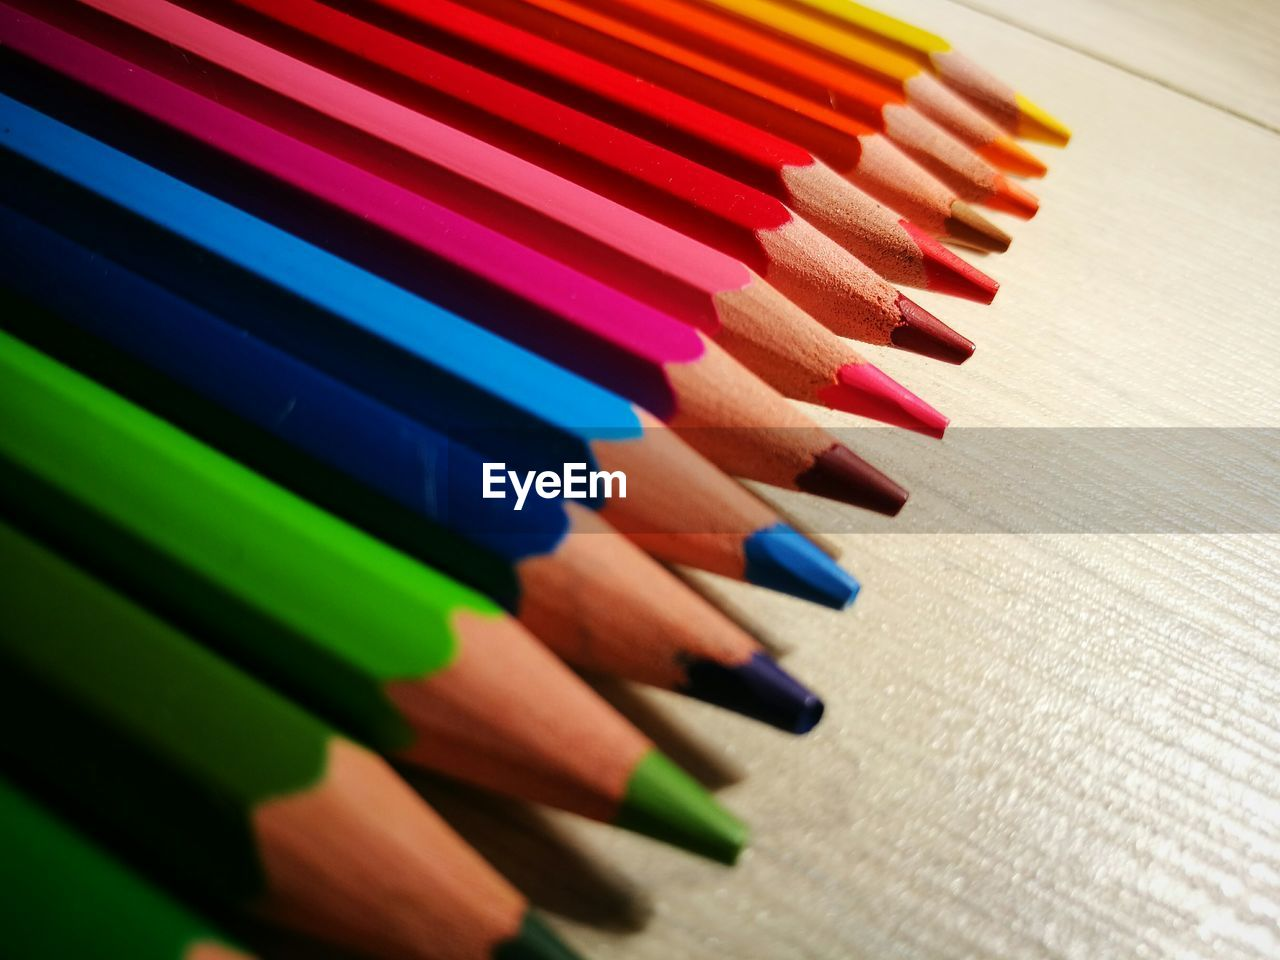 Close-Up Of Colorful Pencils Arranged On Table